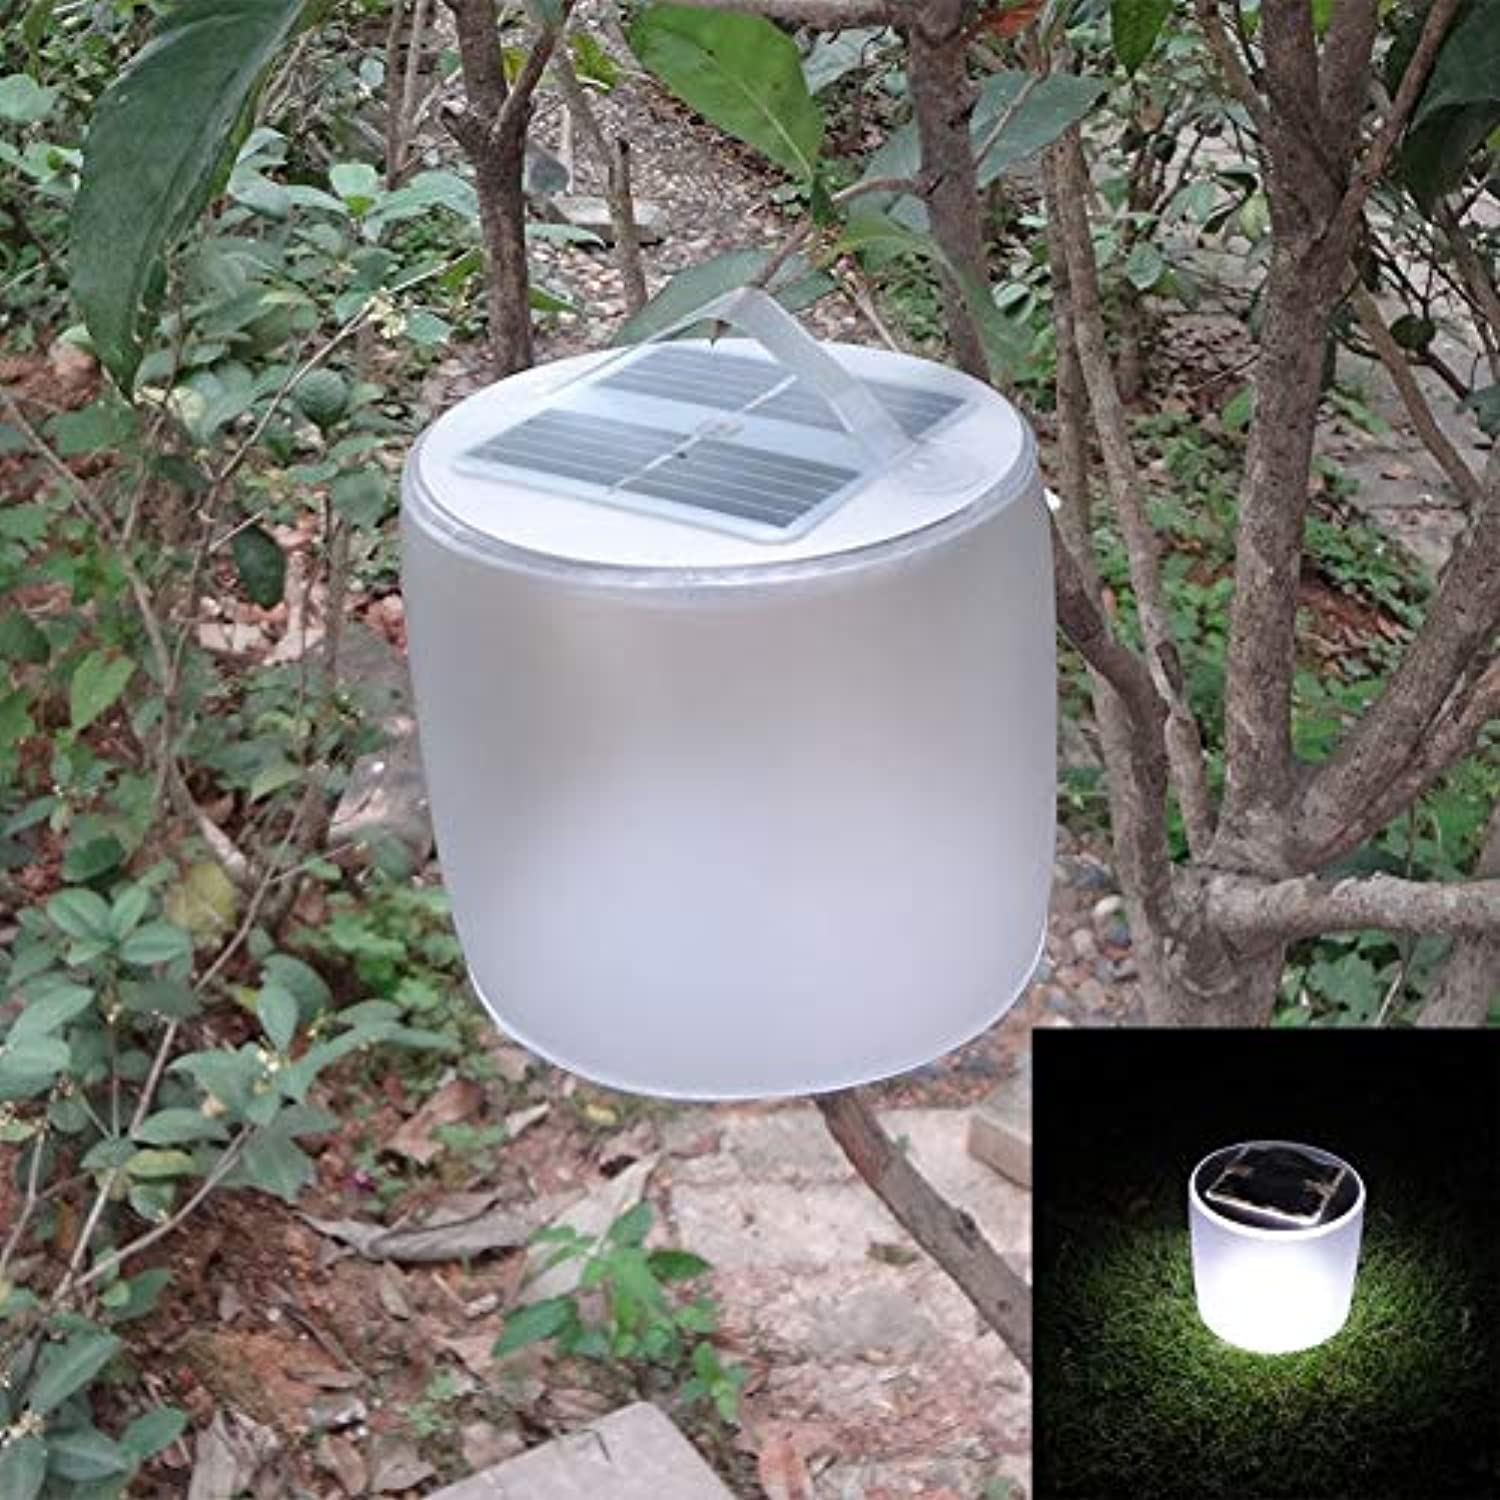 Multi color   10 LEDs Solar Light Inflatble redable Camping Hiking Lantern Lights Waterproof Night Lamp with Different Modes Emergency Lamps